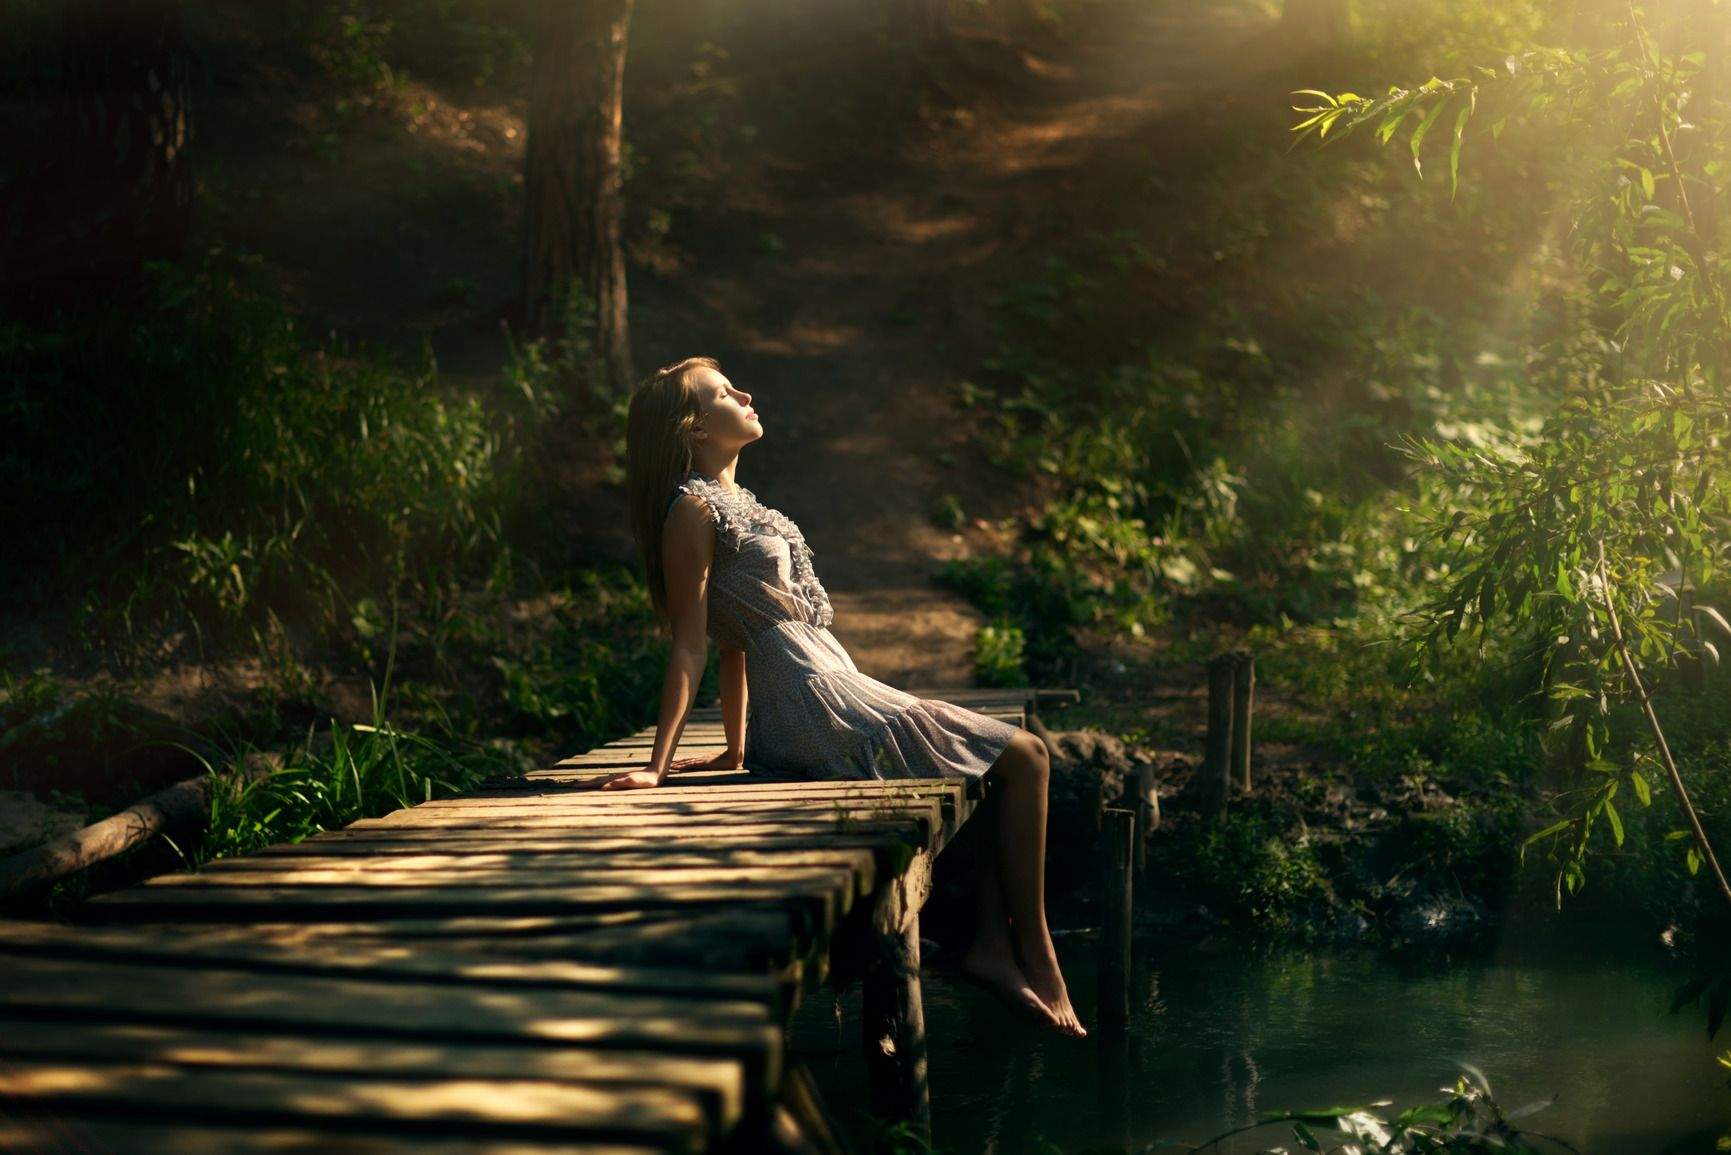 Shot of girl sitting on a wooden bridge over the stream